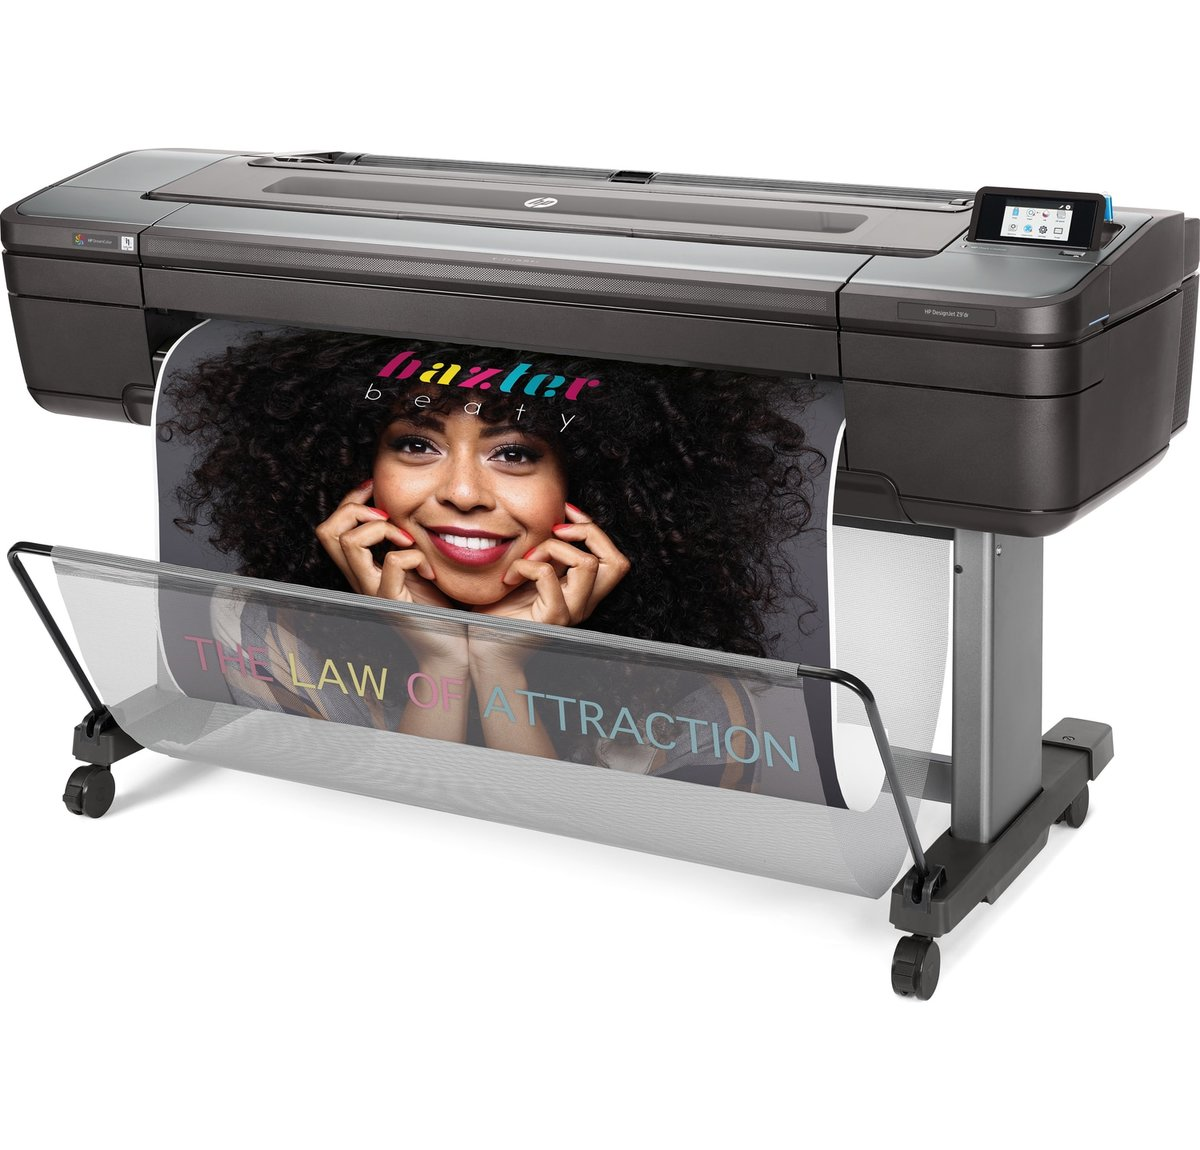 "HP DesignJet Z9+dr Large Format Dual-Roll PostScript® Photo Printer - 44"", with Vertical Trimmer (X9D24A)"